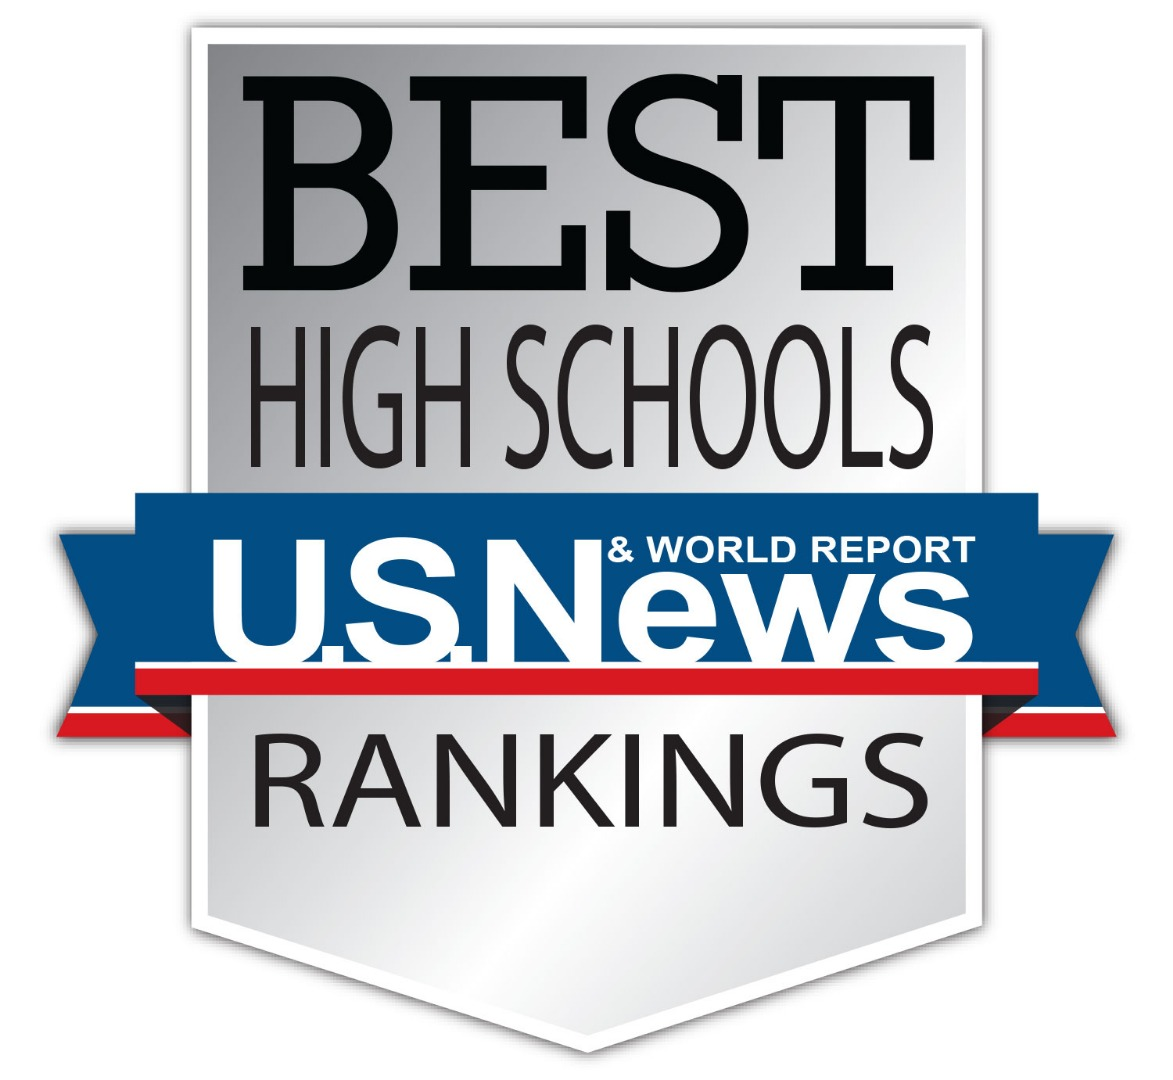 Best High Schools U.S. News & World Report Rankings